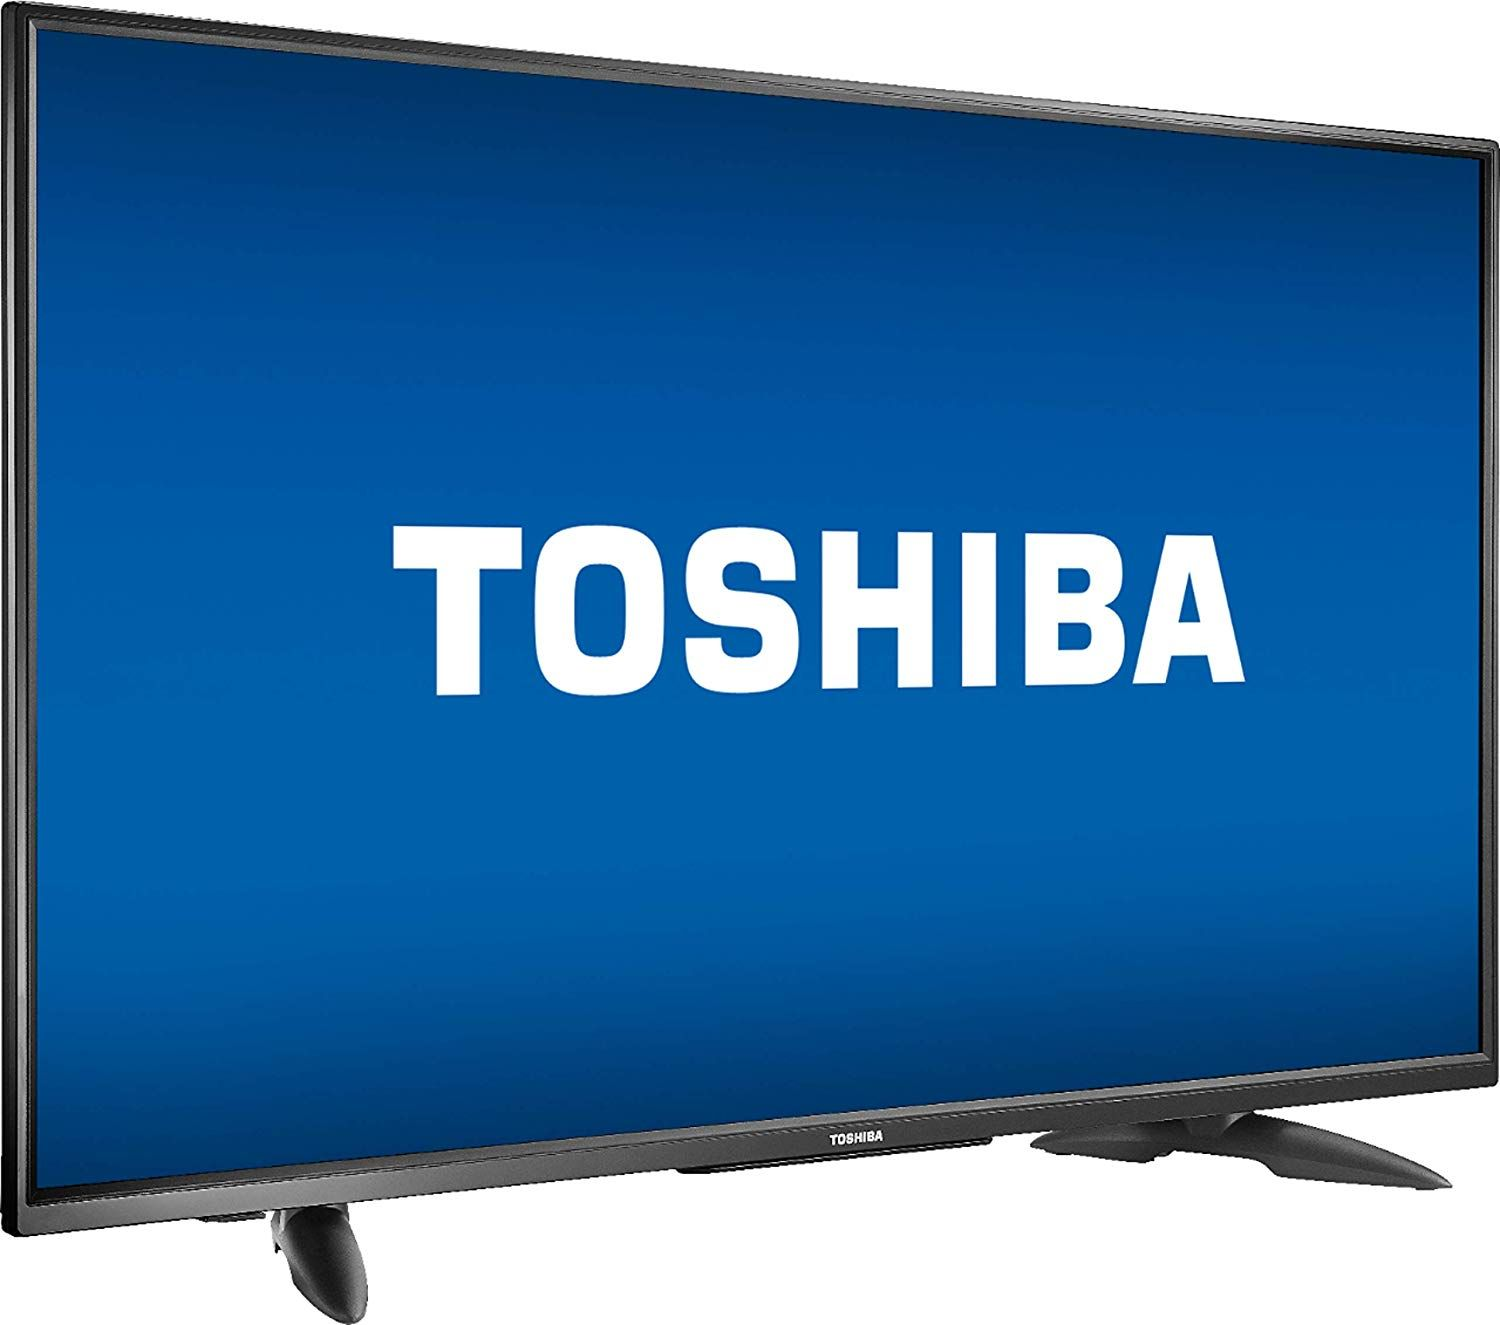 "The 2019 Toshiba 55"" LF711U20 4K UltraHD TV is Currently Available for a Lower Price"